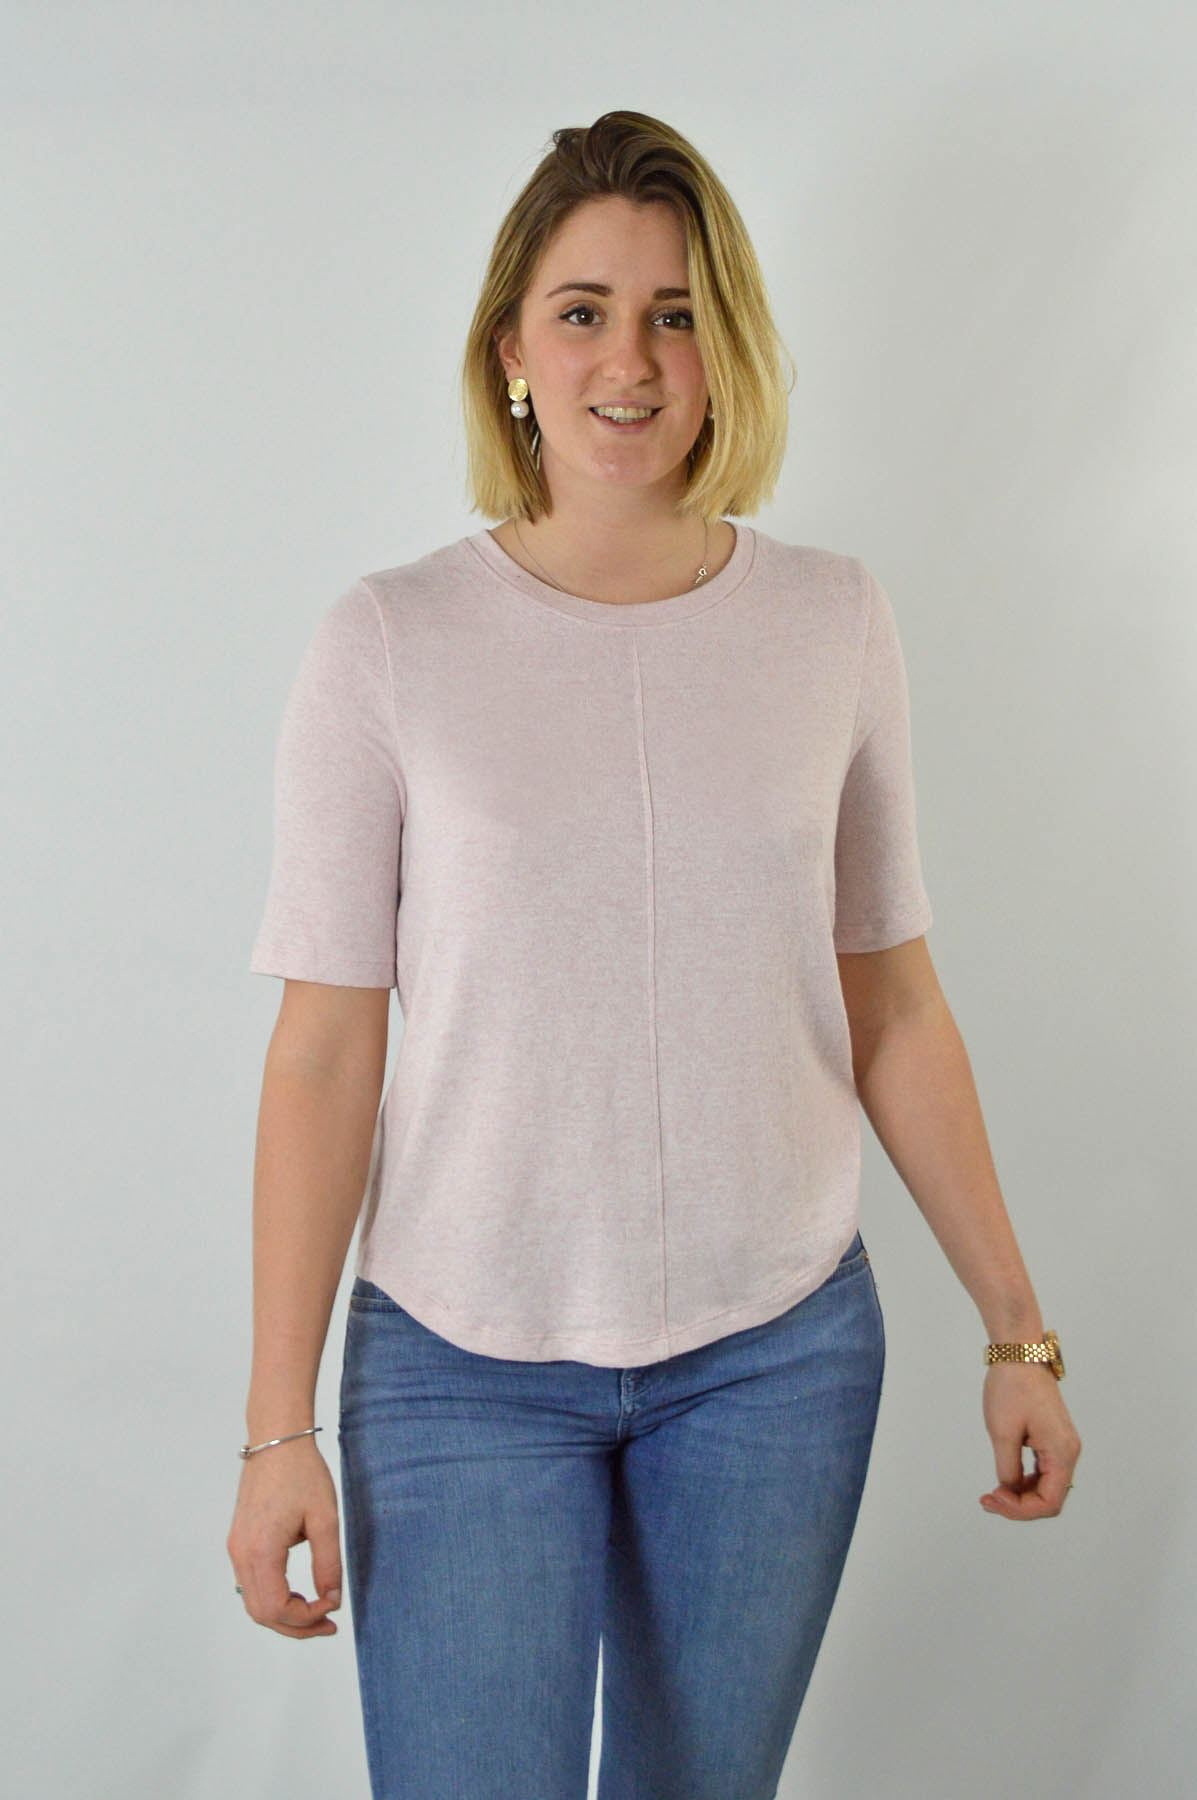 MARKS-AND-SPENCER-M-amp-S-Soft-Knit-Scoop-Neck-Top-Curved-Hem-Pale-Pink-Dark-Navy thumbnail 9